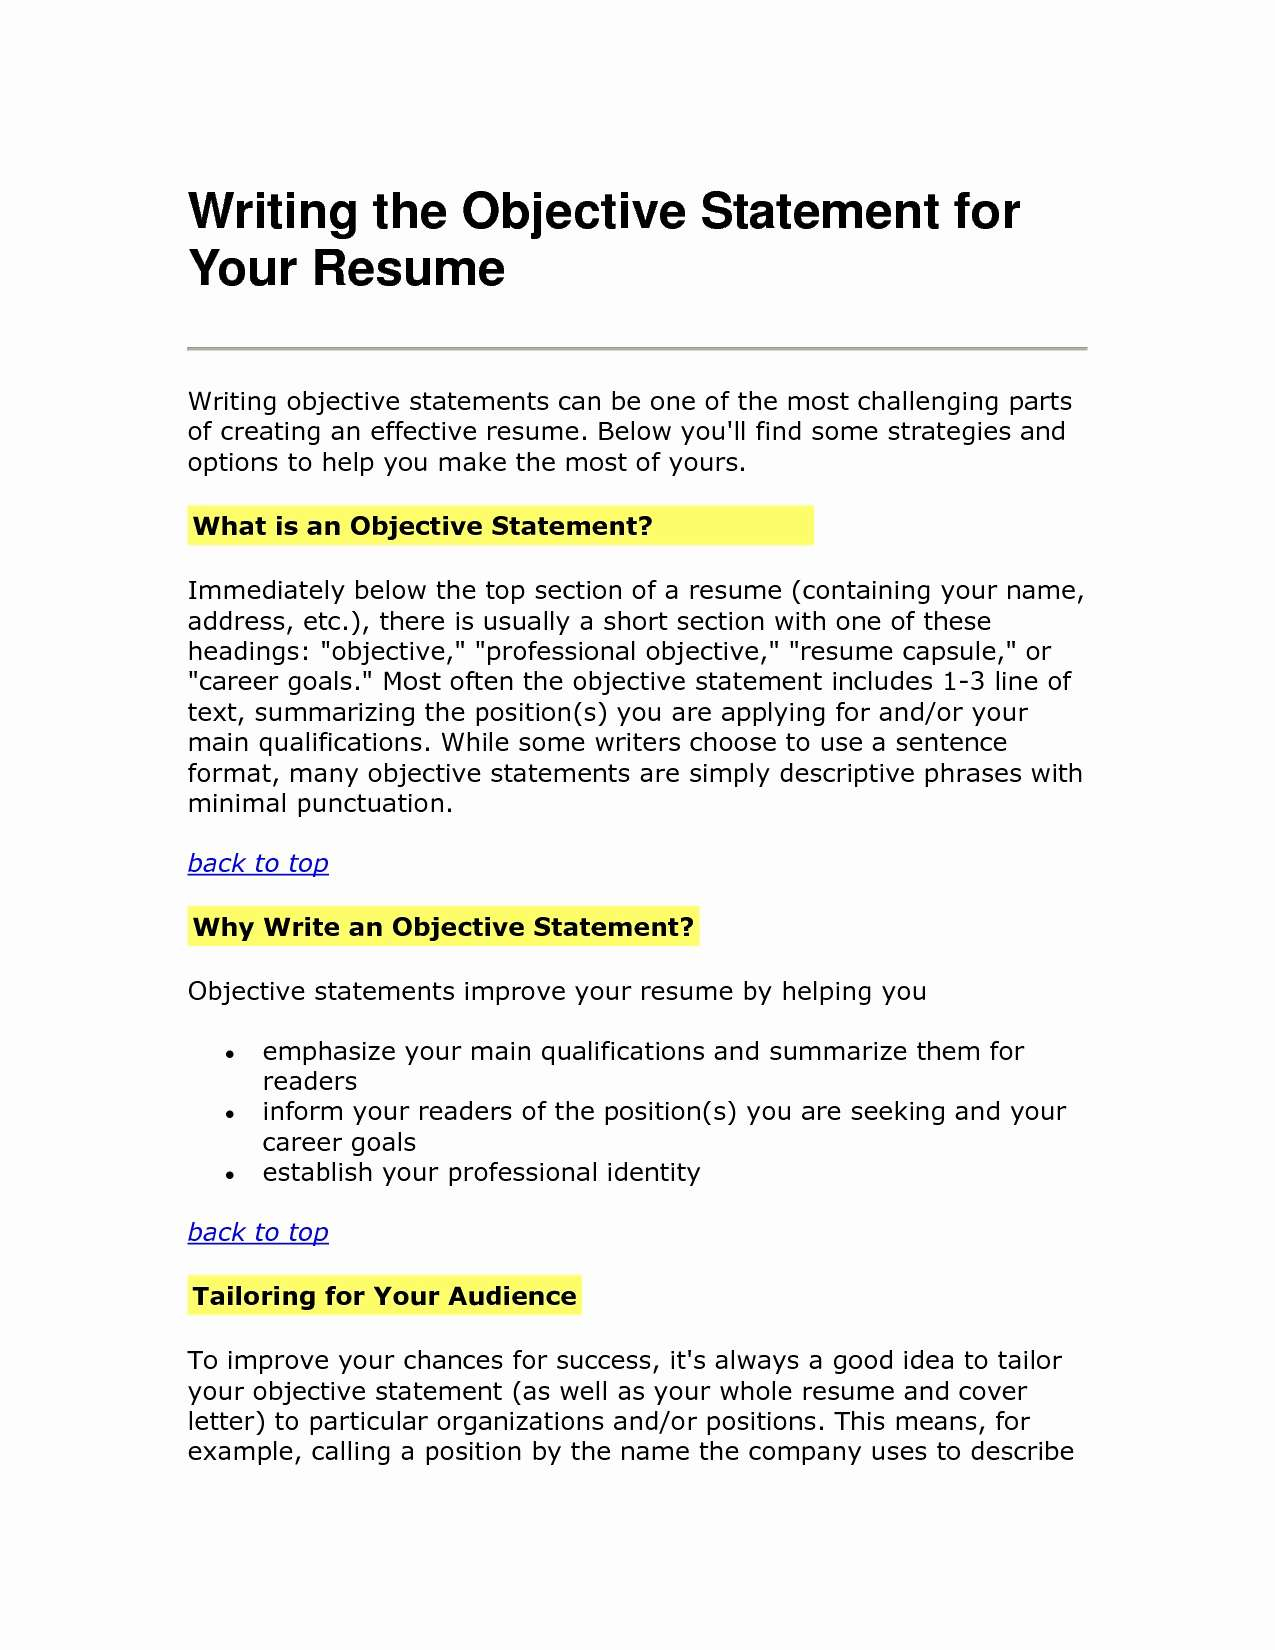 Lds Missionary Letter Template - Mission Statement Examples for Resume Personal Statement Examples